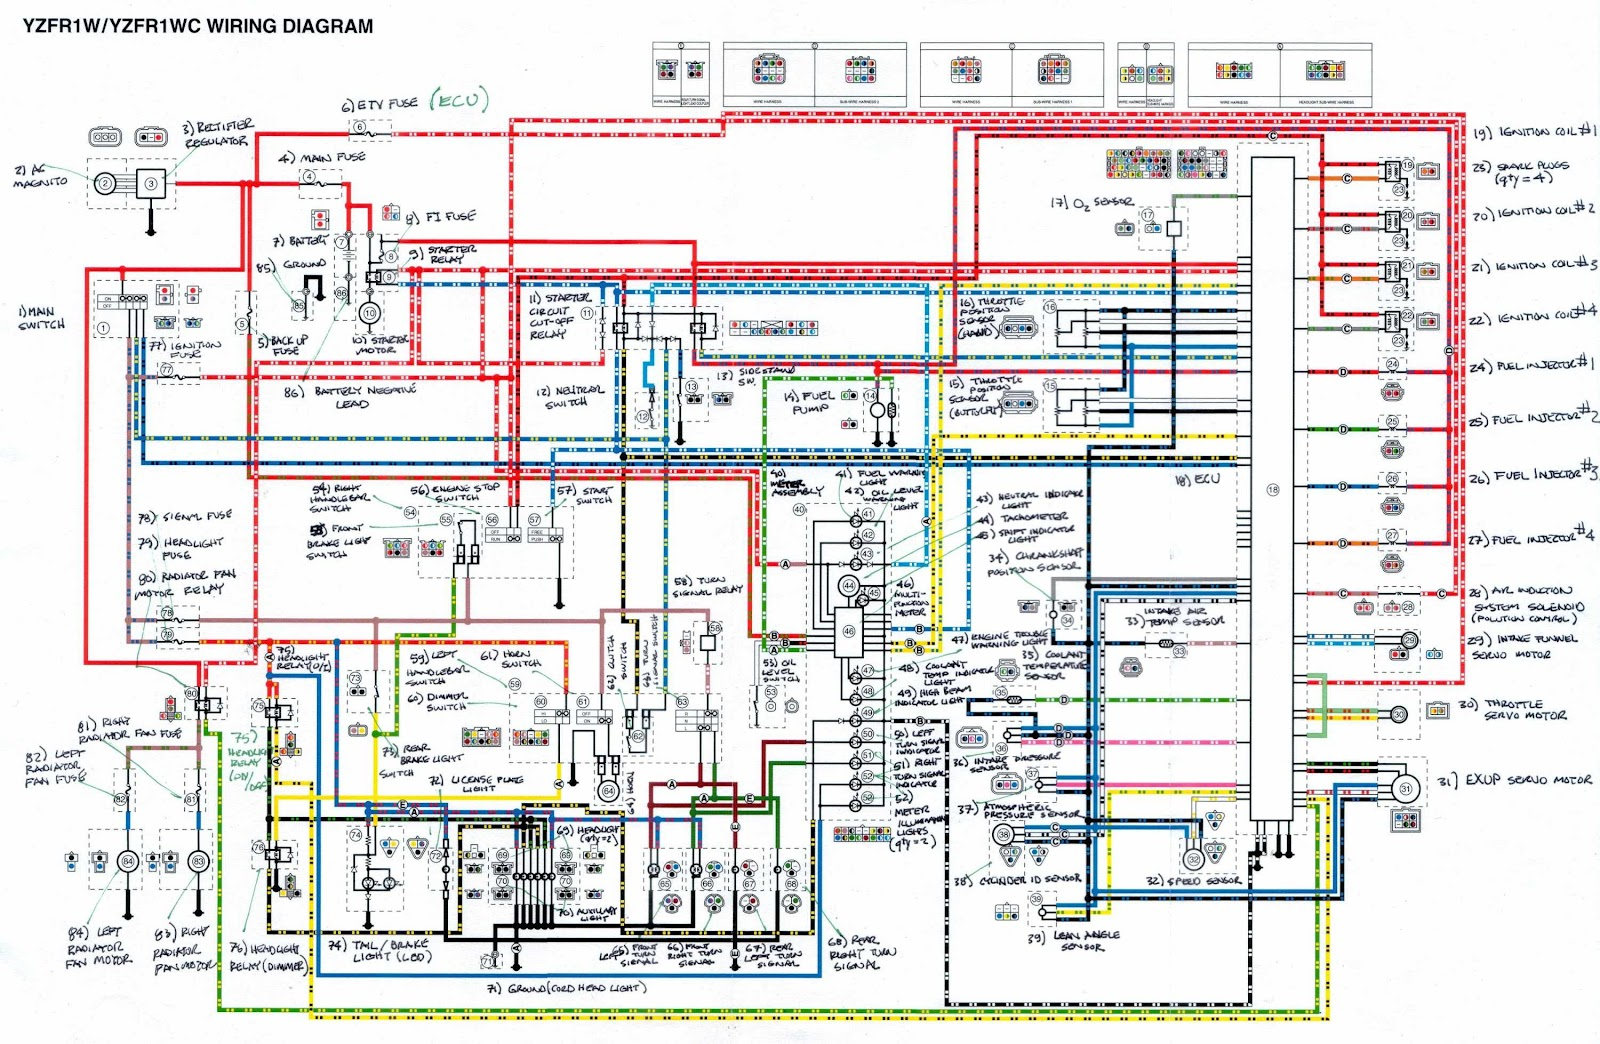 medium resolution of 2001 yamaha yzf r1 wiring diagram 2006 yamaha yzf r1 wiring diagram